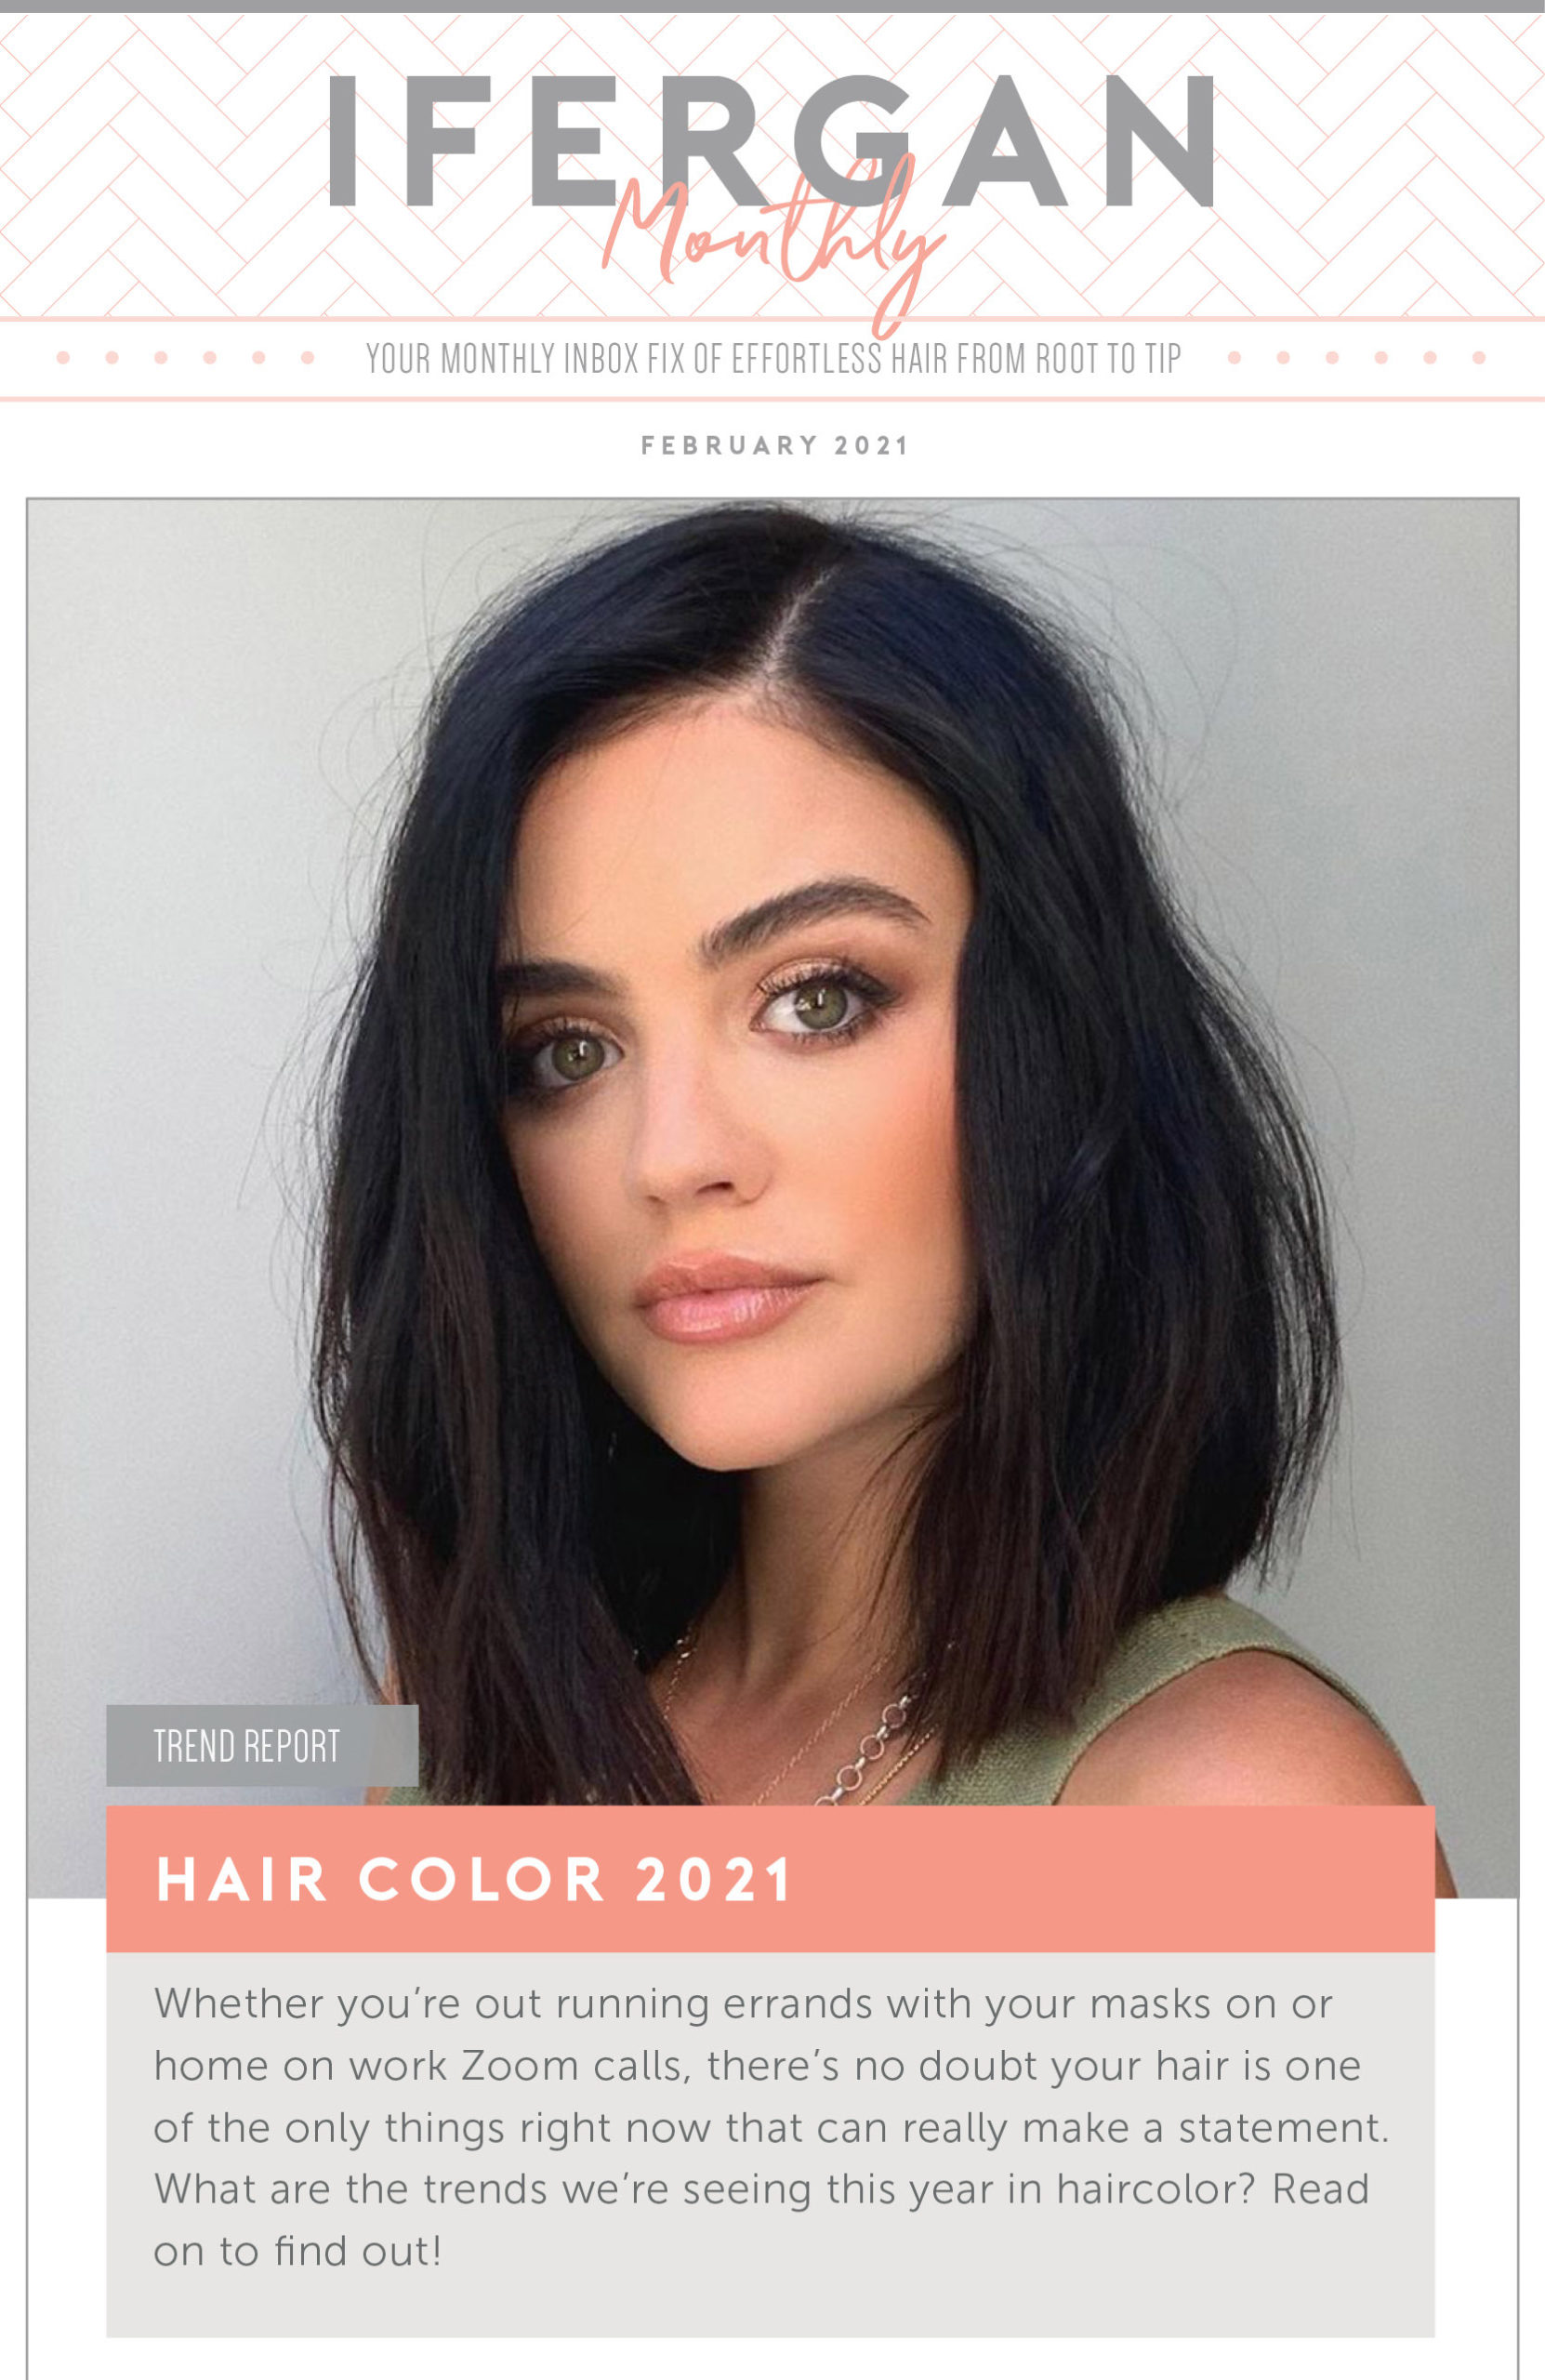 Ifergan Monthly February 2021 - Hair Color Trends - Your hair is one of the only things right now that can make a statement